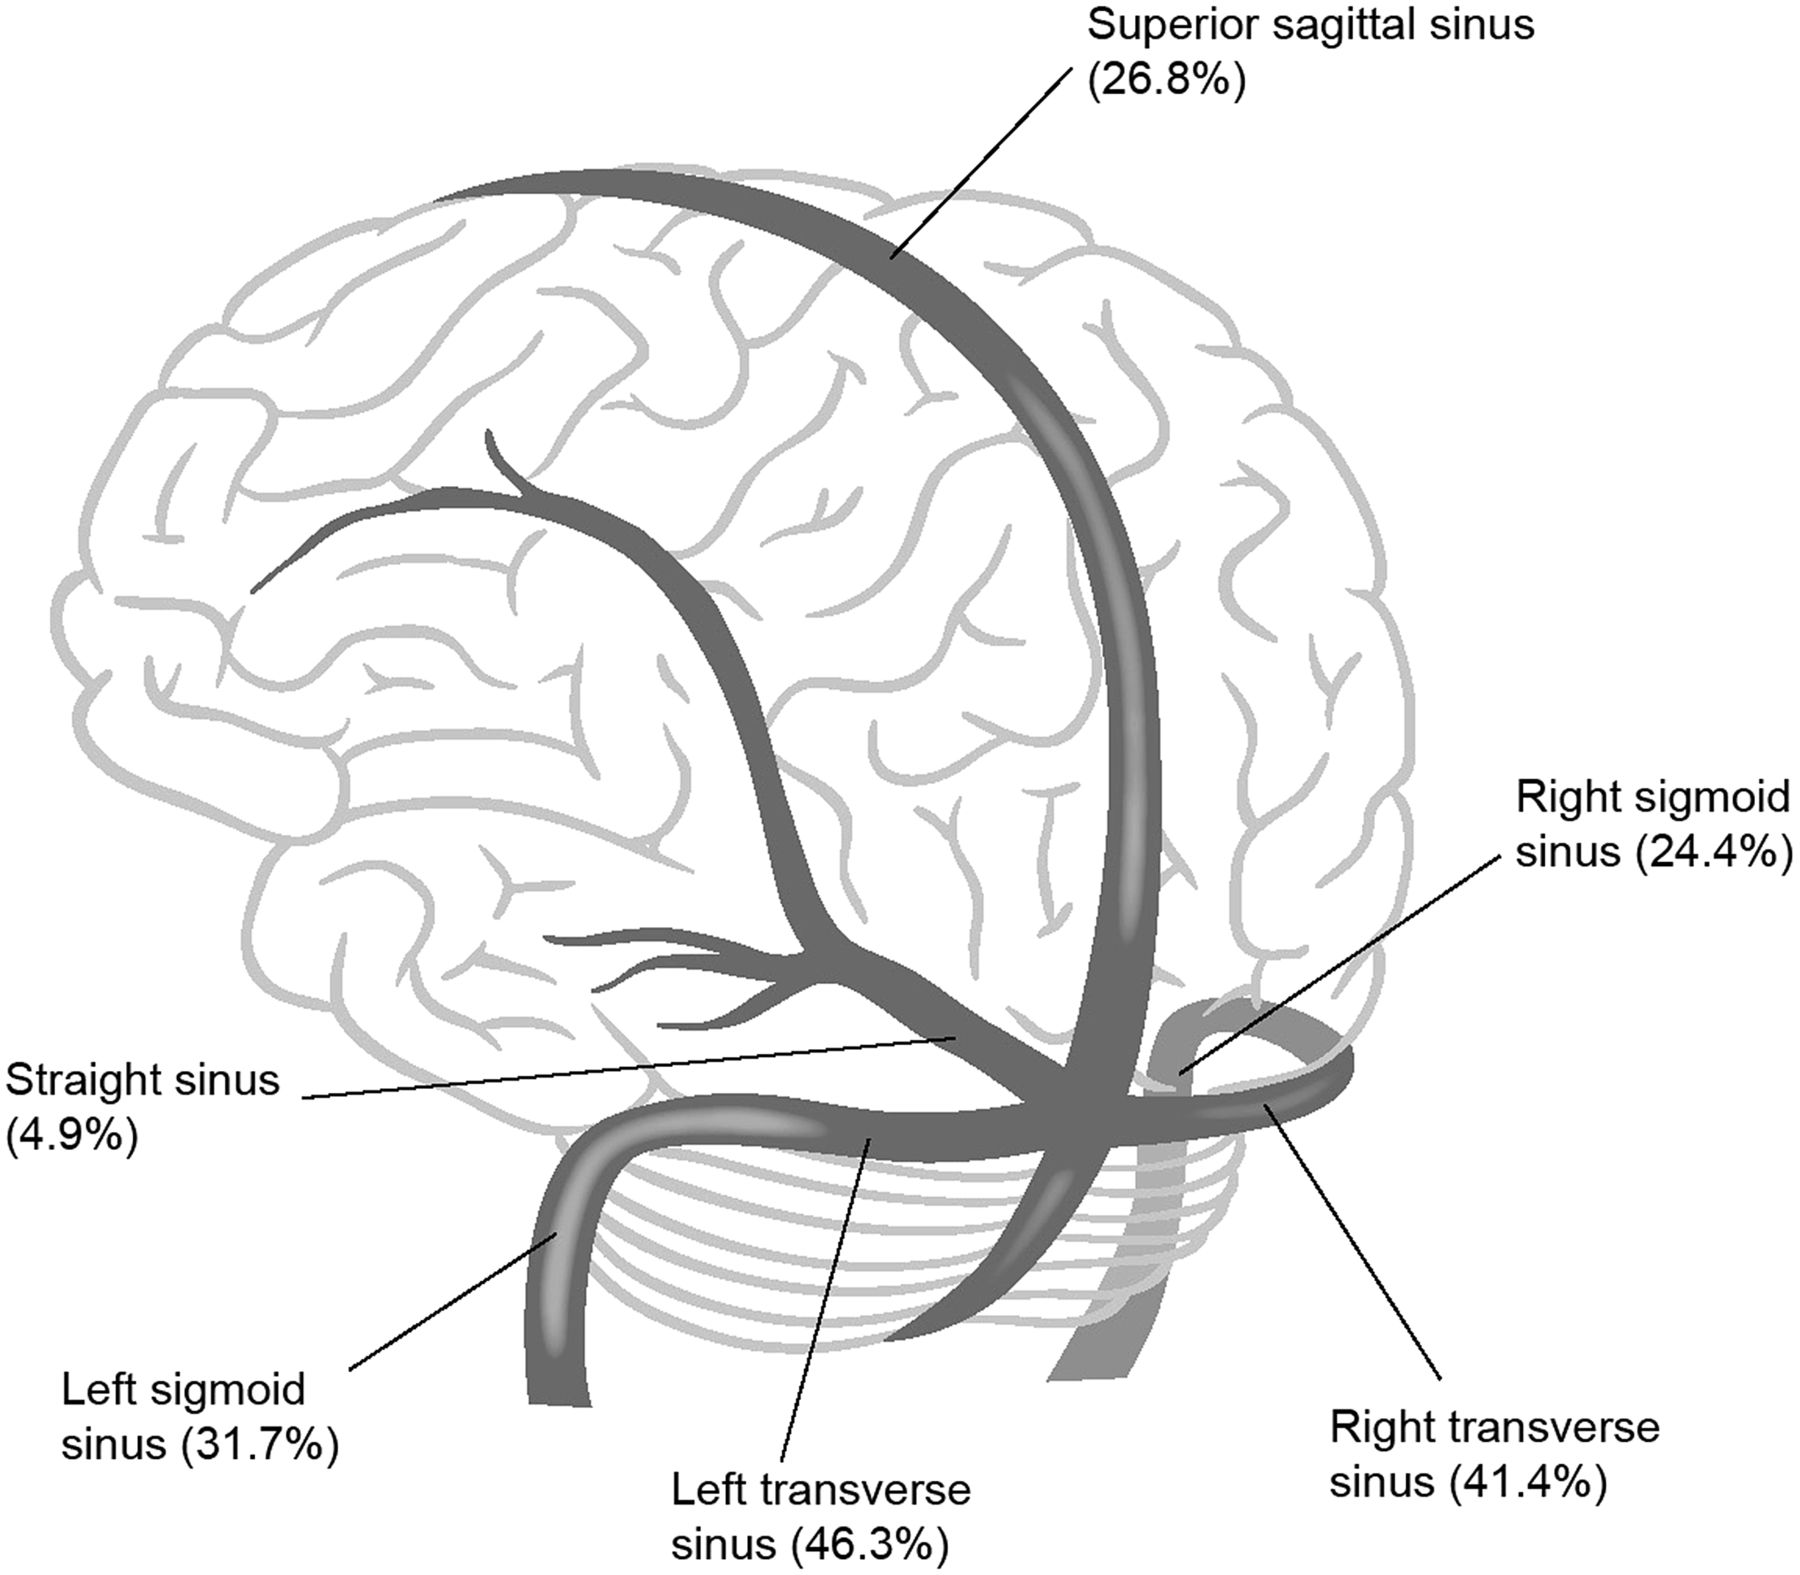 management and outcome of spontaneous cerebral venous